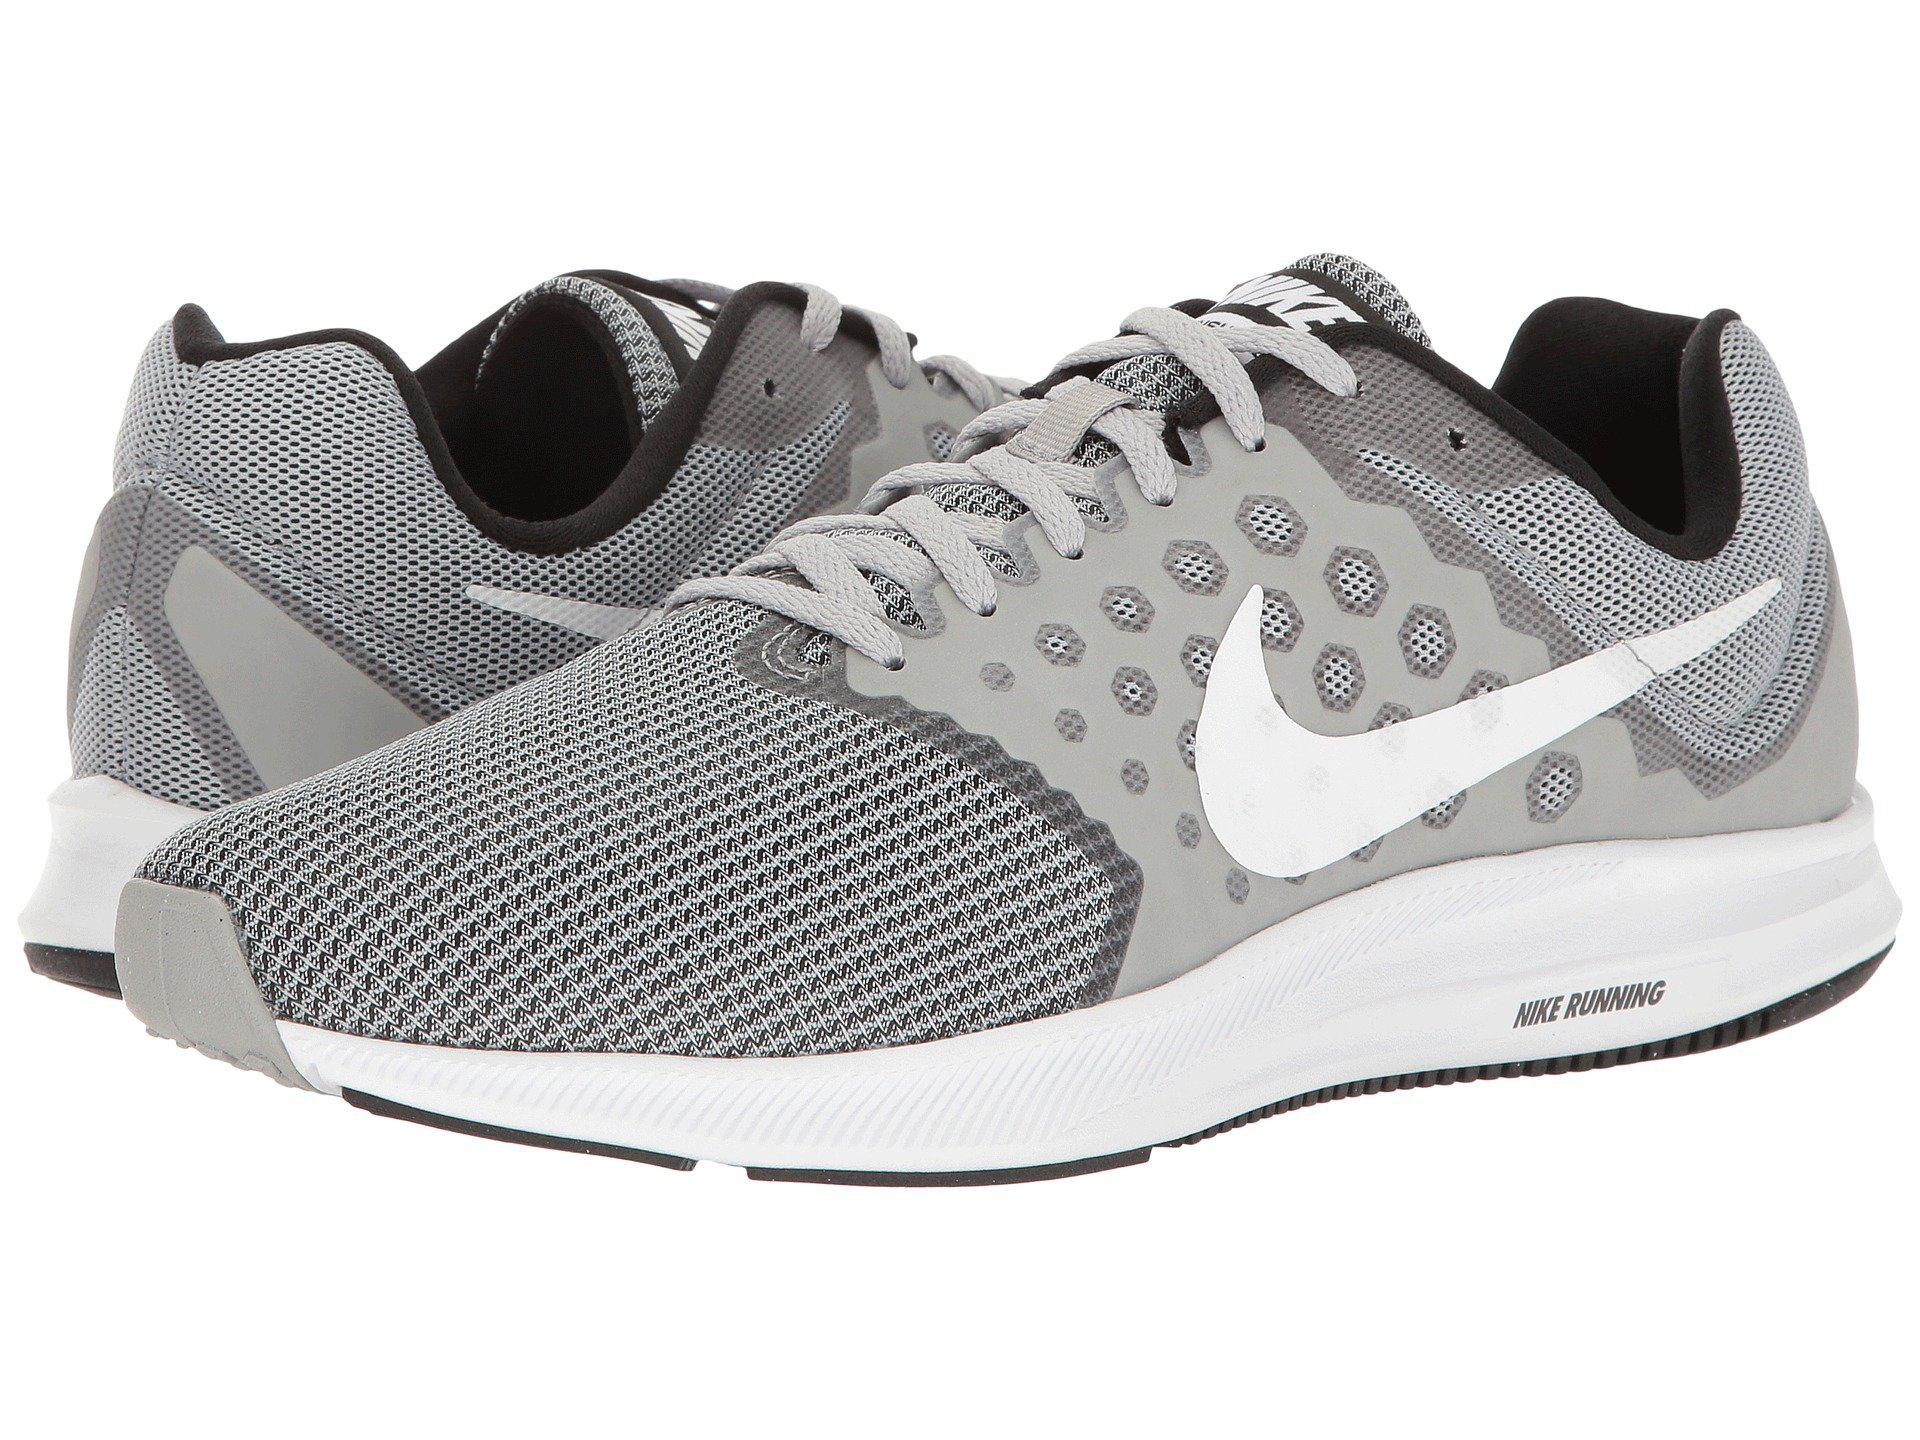 a8788f8b0fd Lyst - Nike Downshifter 7 in Gray for Men - Save 22%